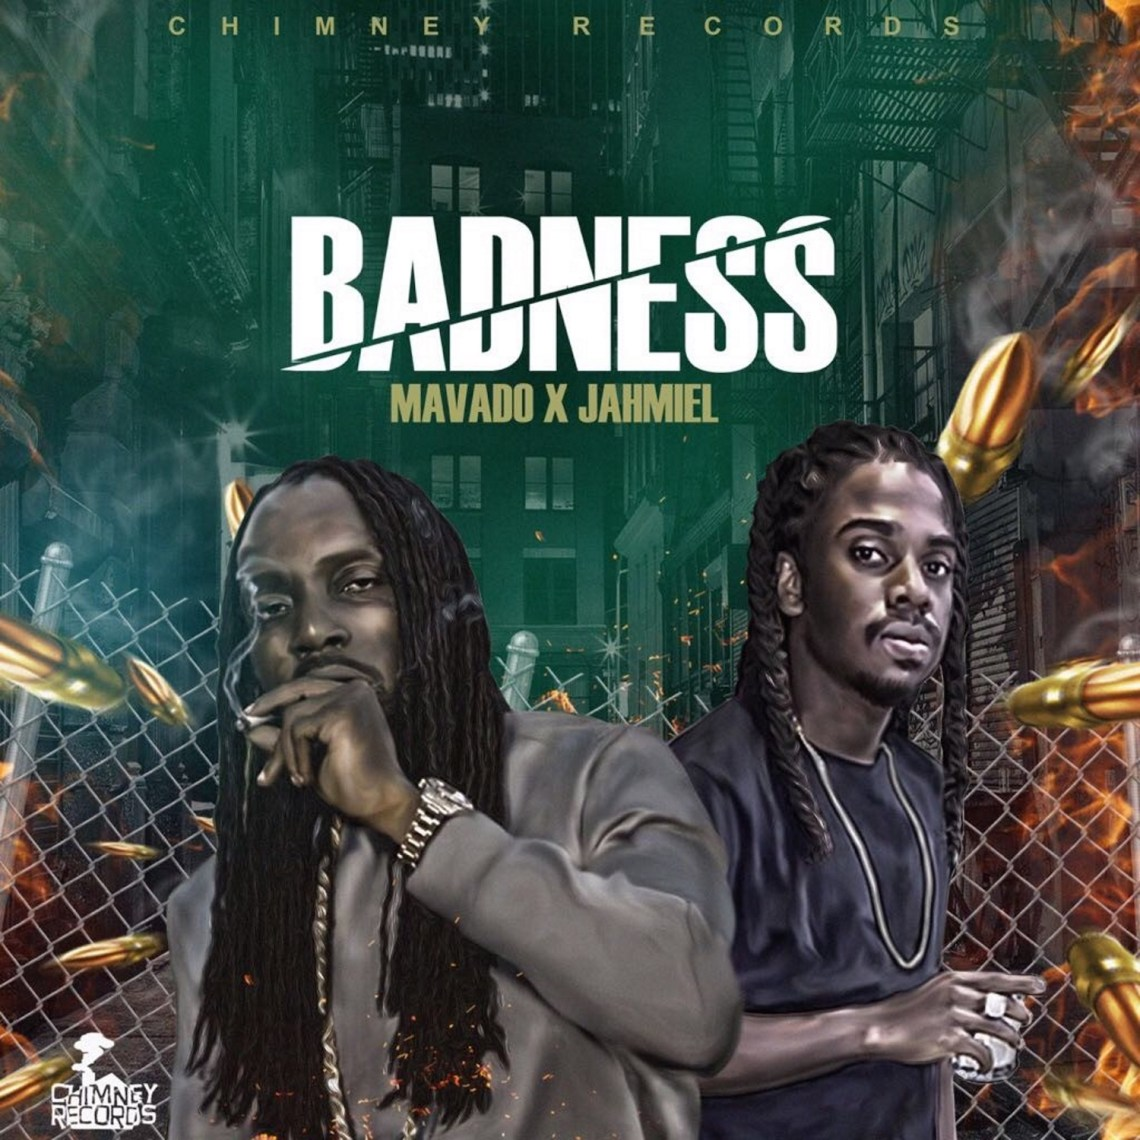 Badness is the first official collaboration from Mavado and Jahmiel